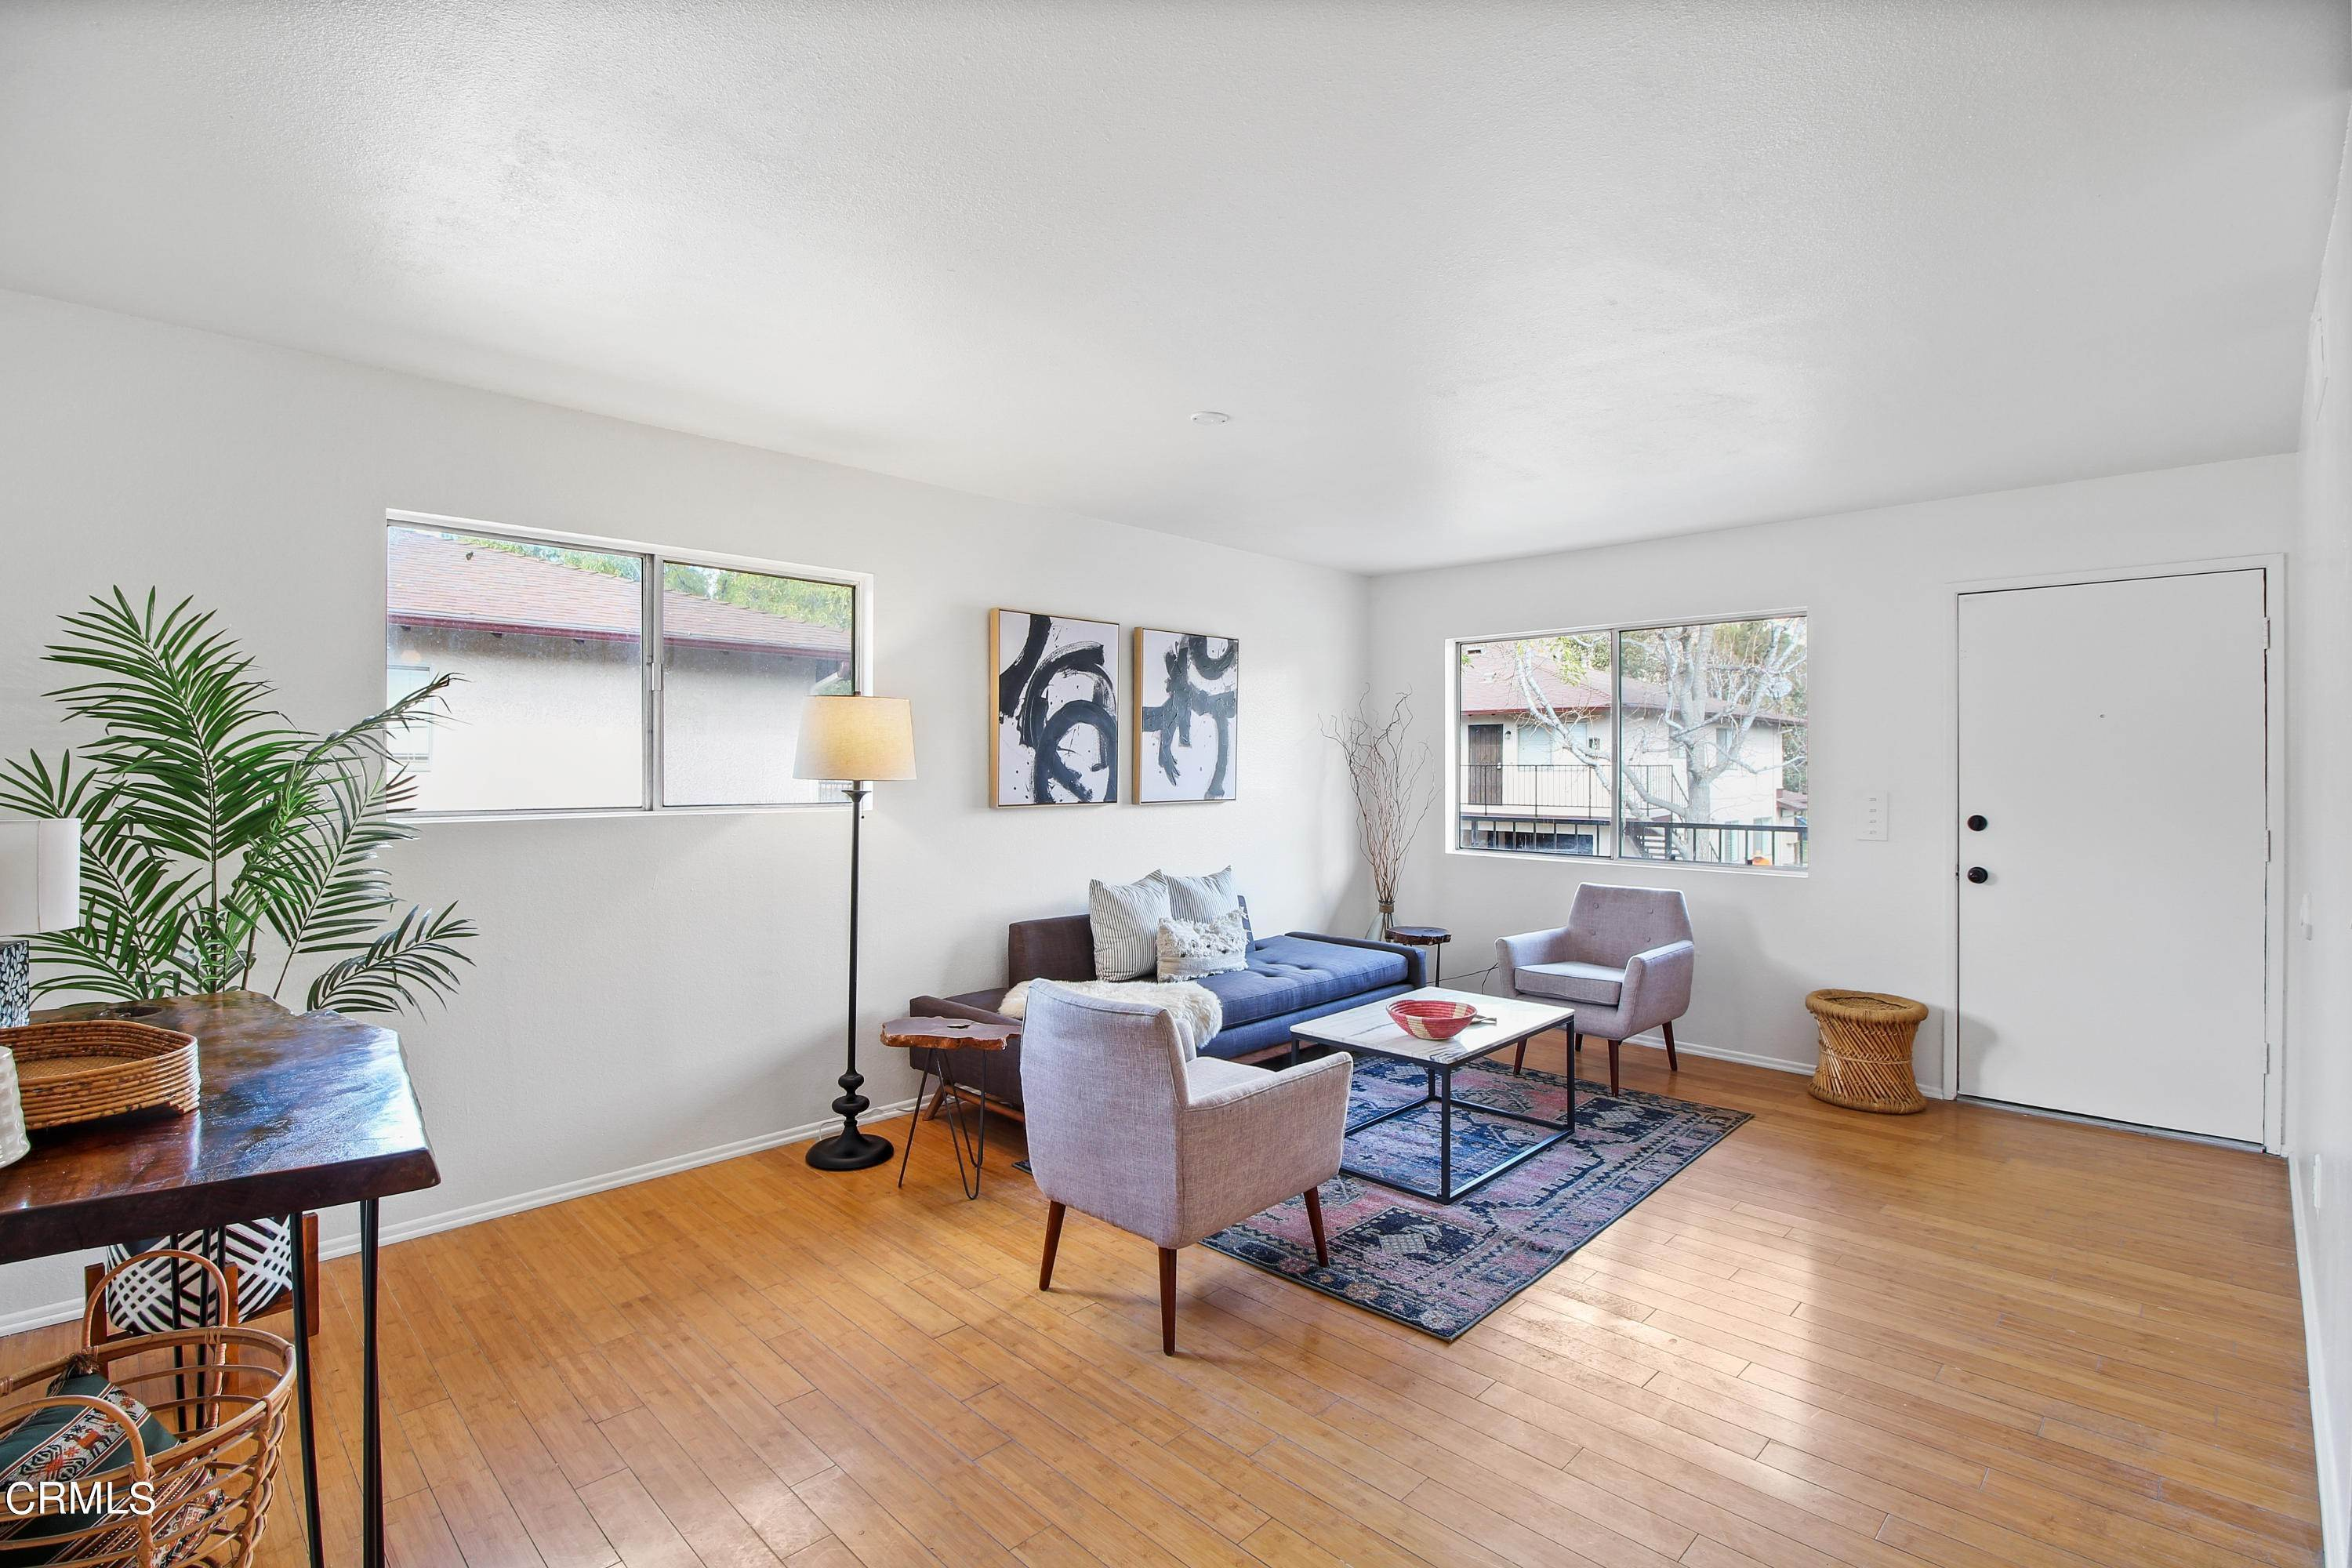 3. Condominiums for Sale at 1105 West Calle De La Luna #4 1105 West Calle De La Luna Azusa, California 91702 United States